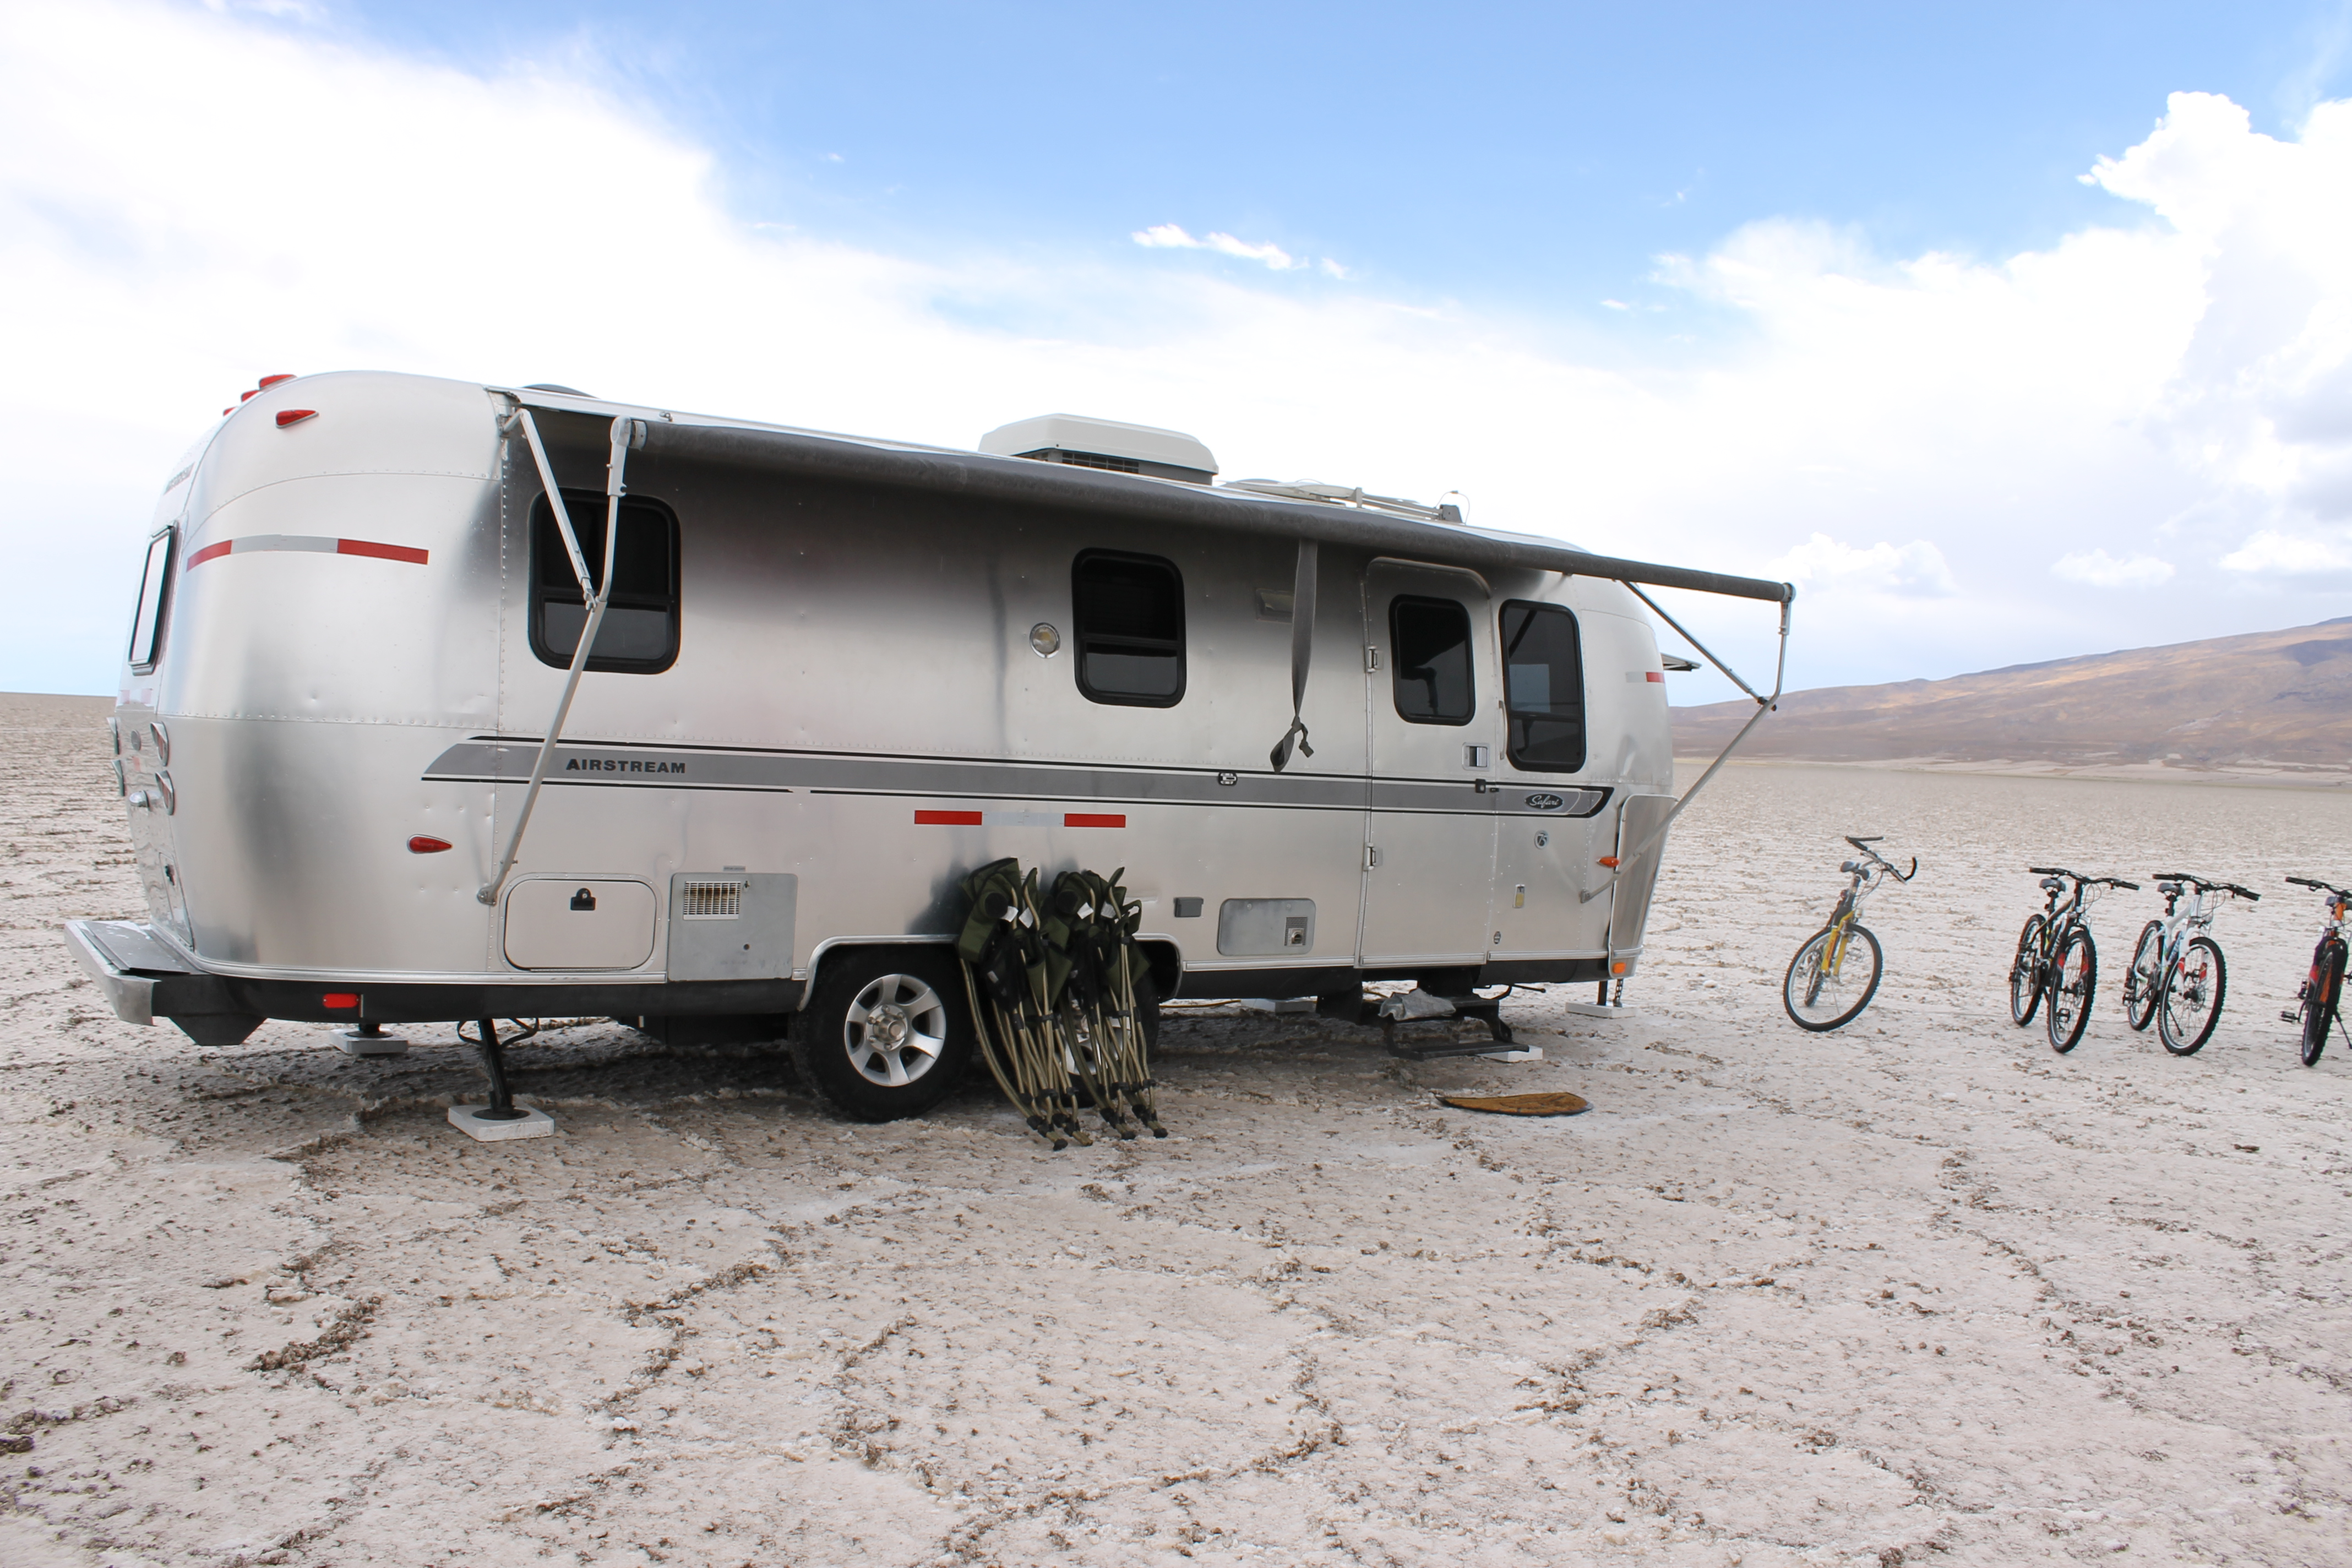 airstream uyuni camper luxurious camping accommodation. Black Bedroom Furniture Sets. Home Design Ideas